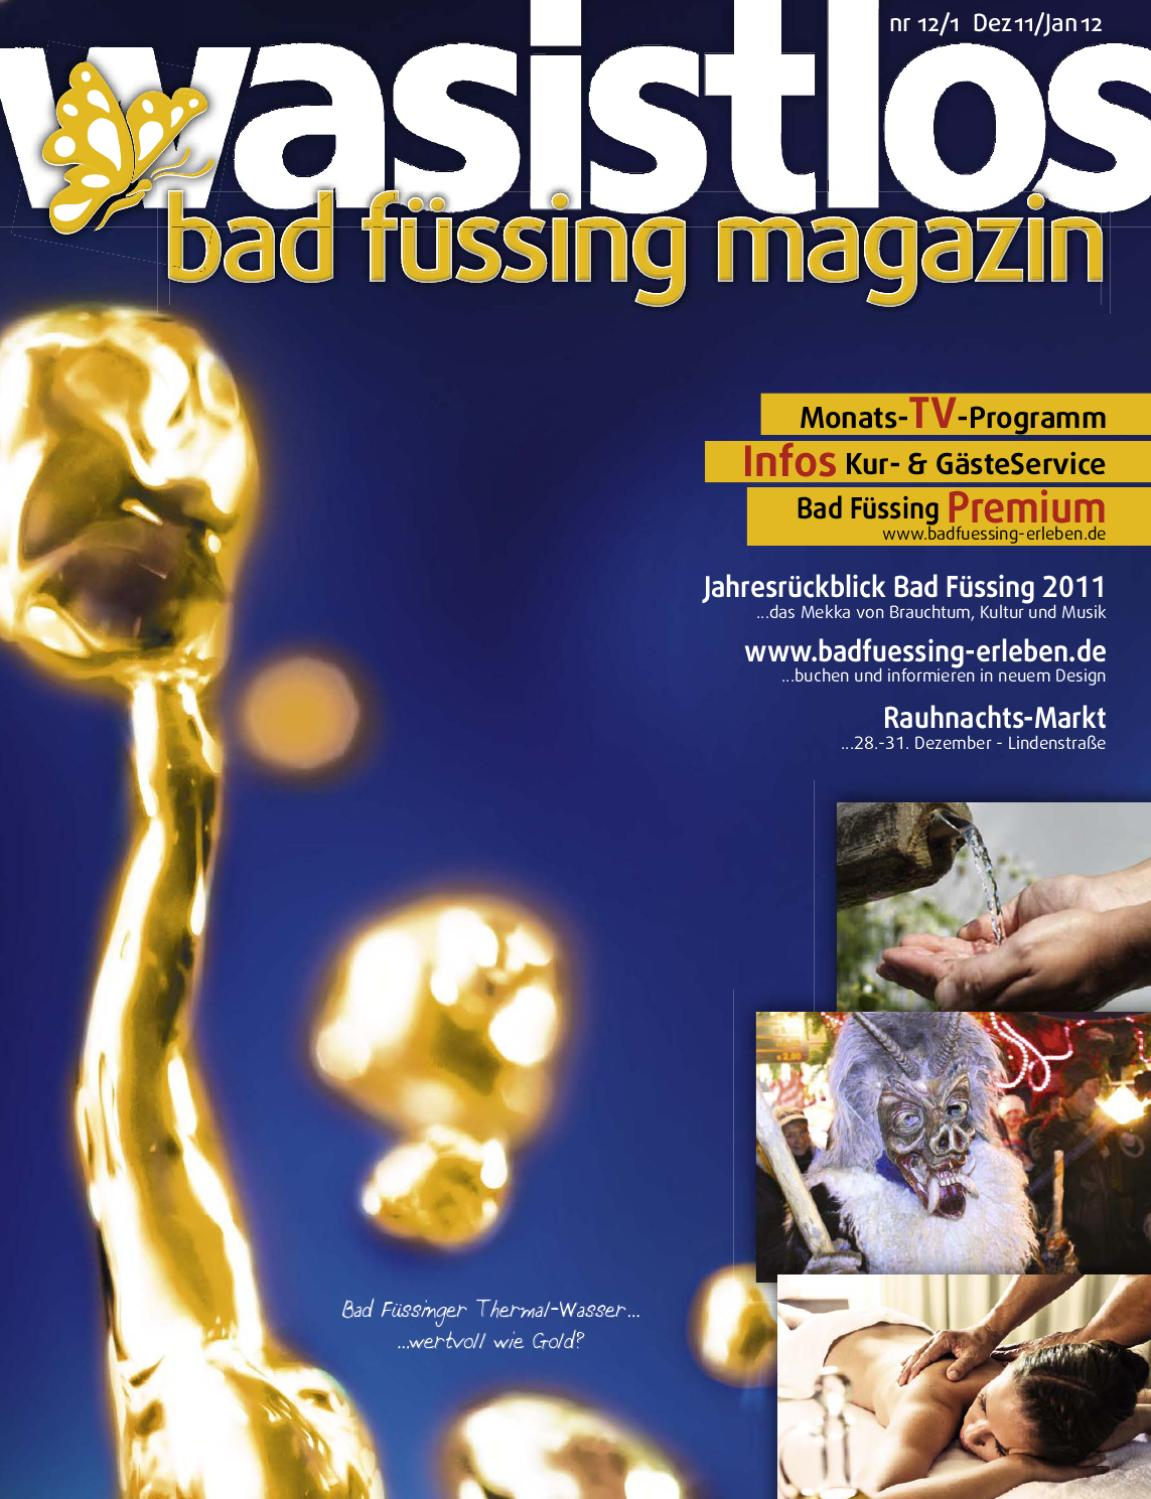 Landhaus Putz Bad Füssing Wasistlos Bad Füssing Magazin 12 11 01 12 By Remark